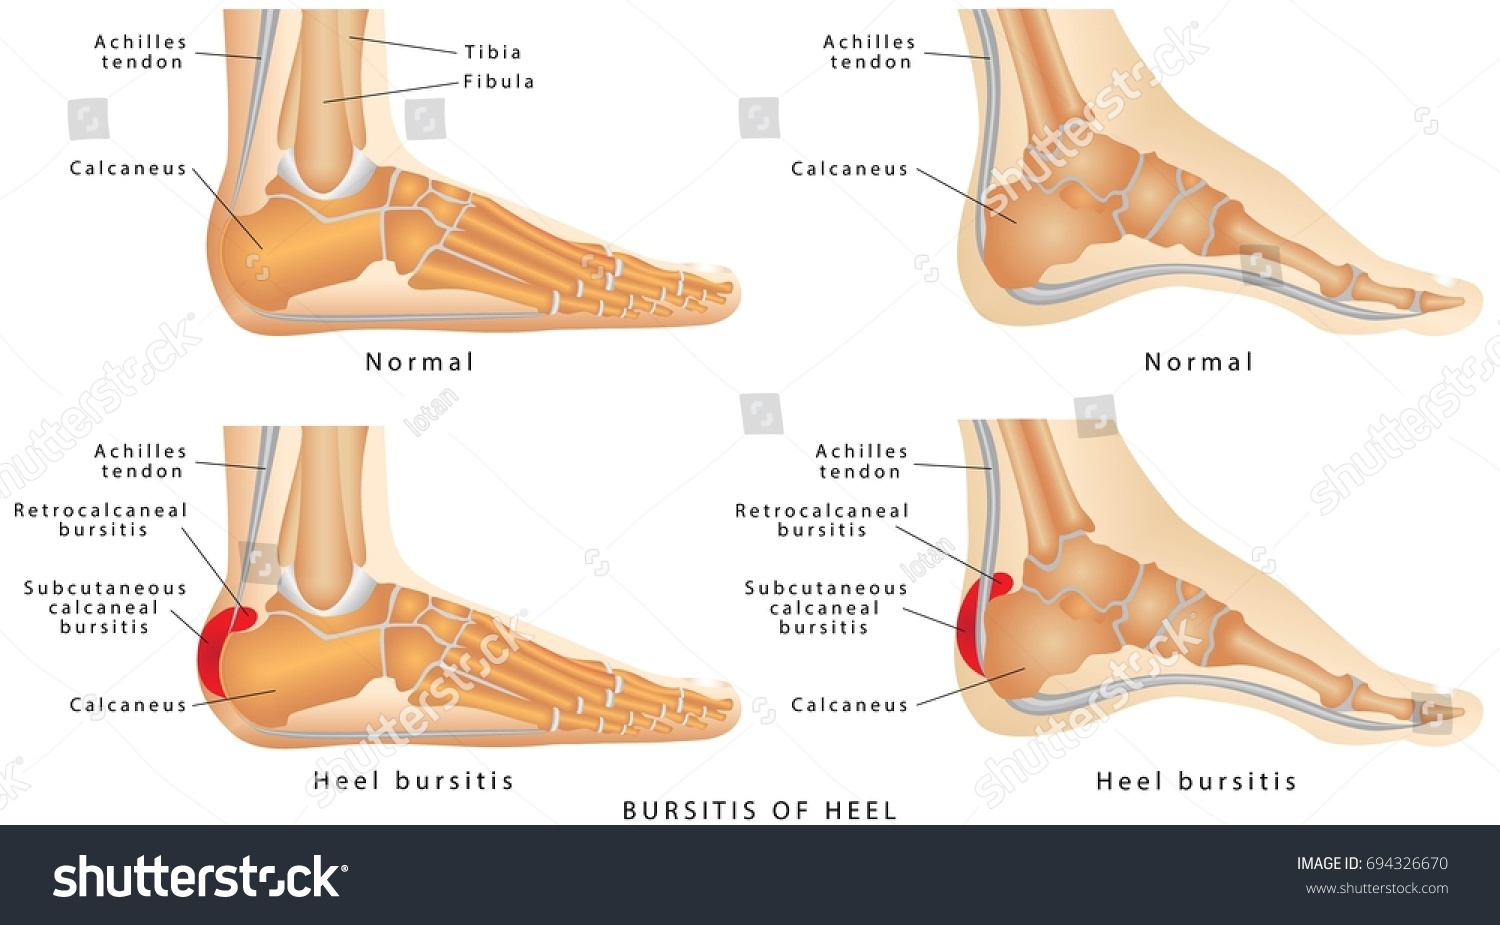 Heel Bursitis Foot Normal Heel Foot Stock Vector HD (Royalty Free ...